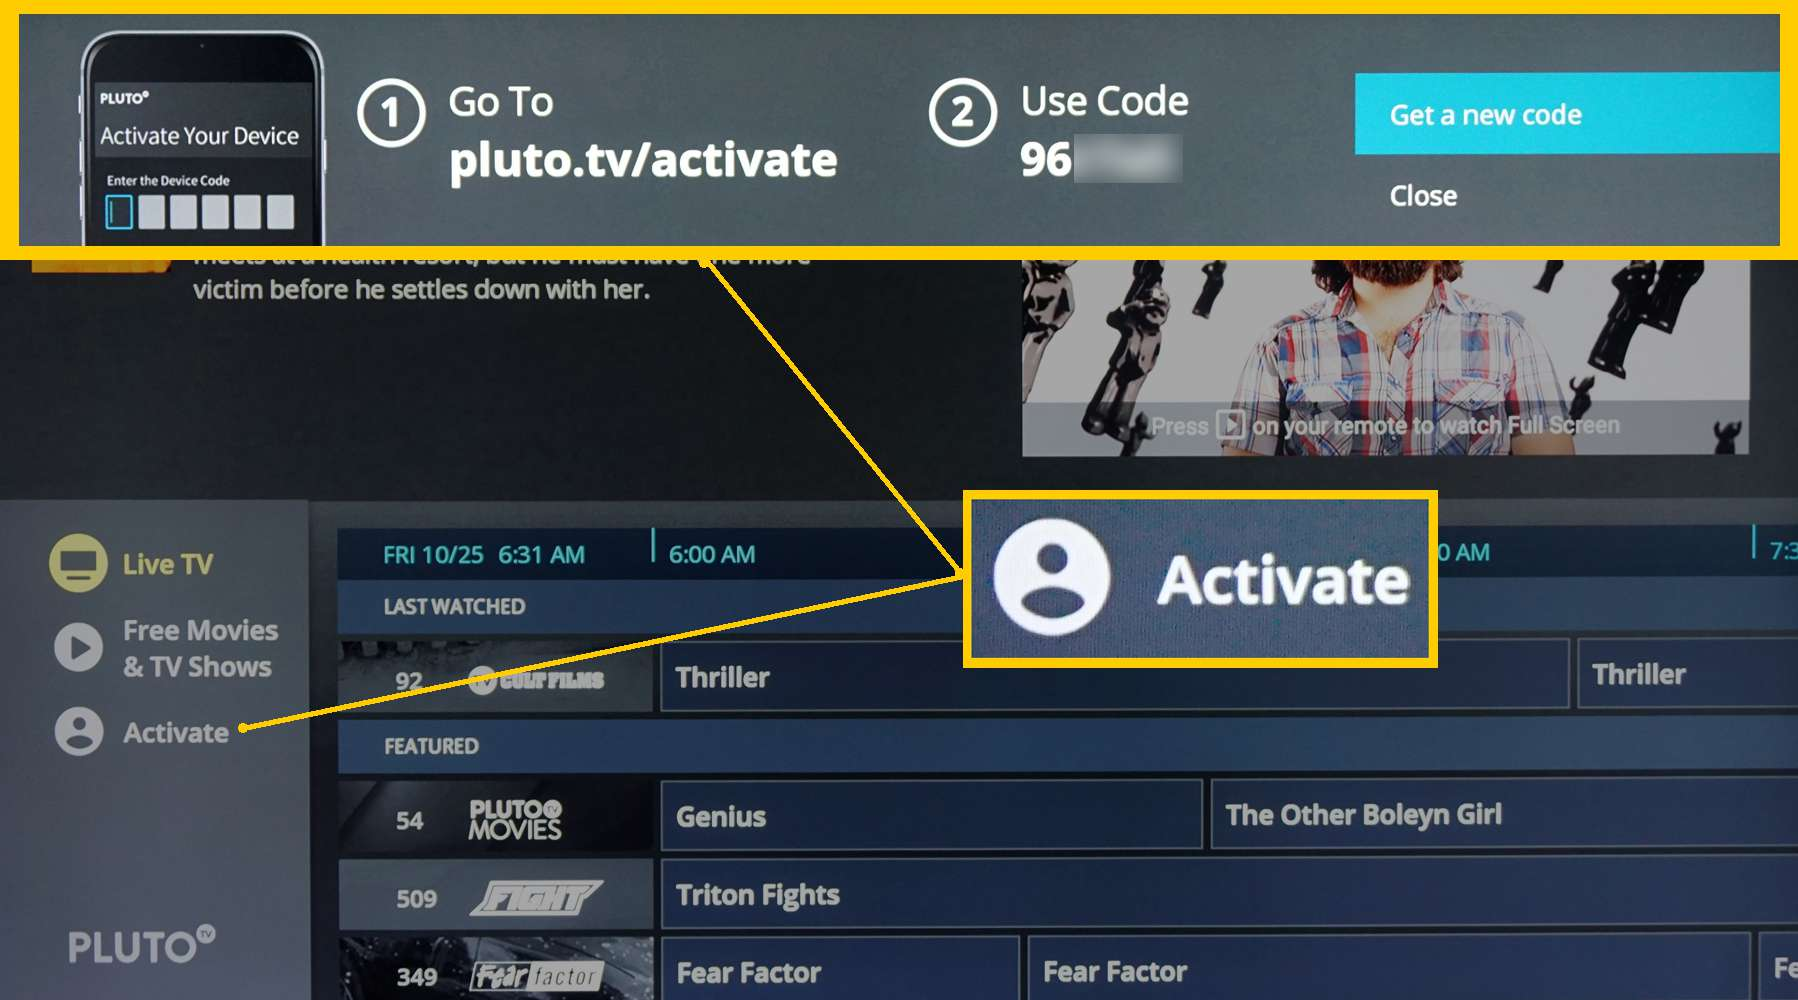 Pluto TV – Activate Prompt on TV Screen